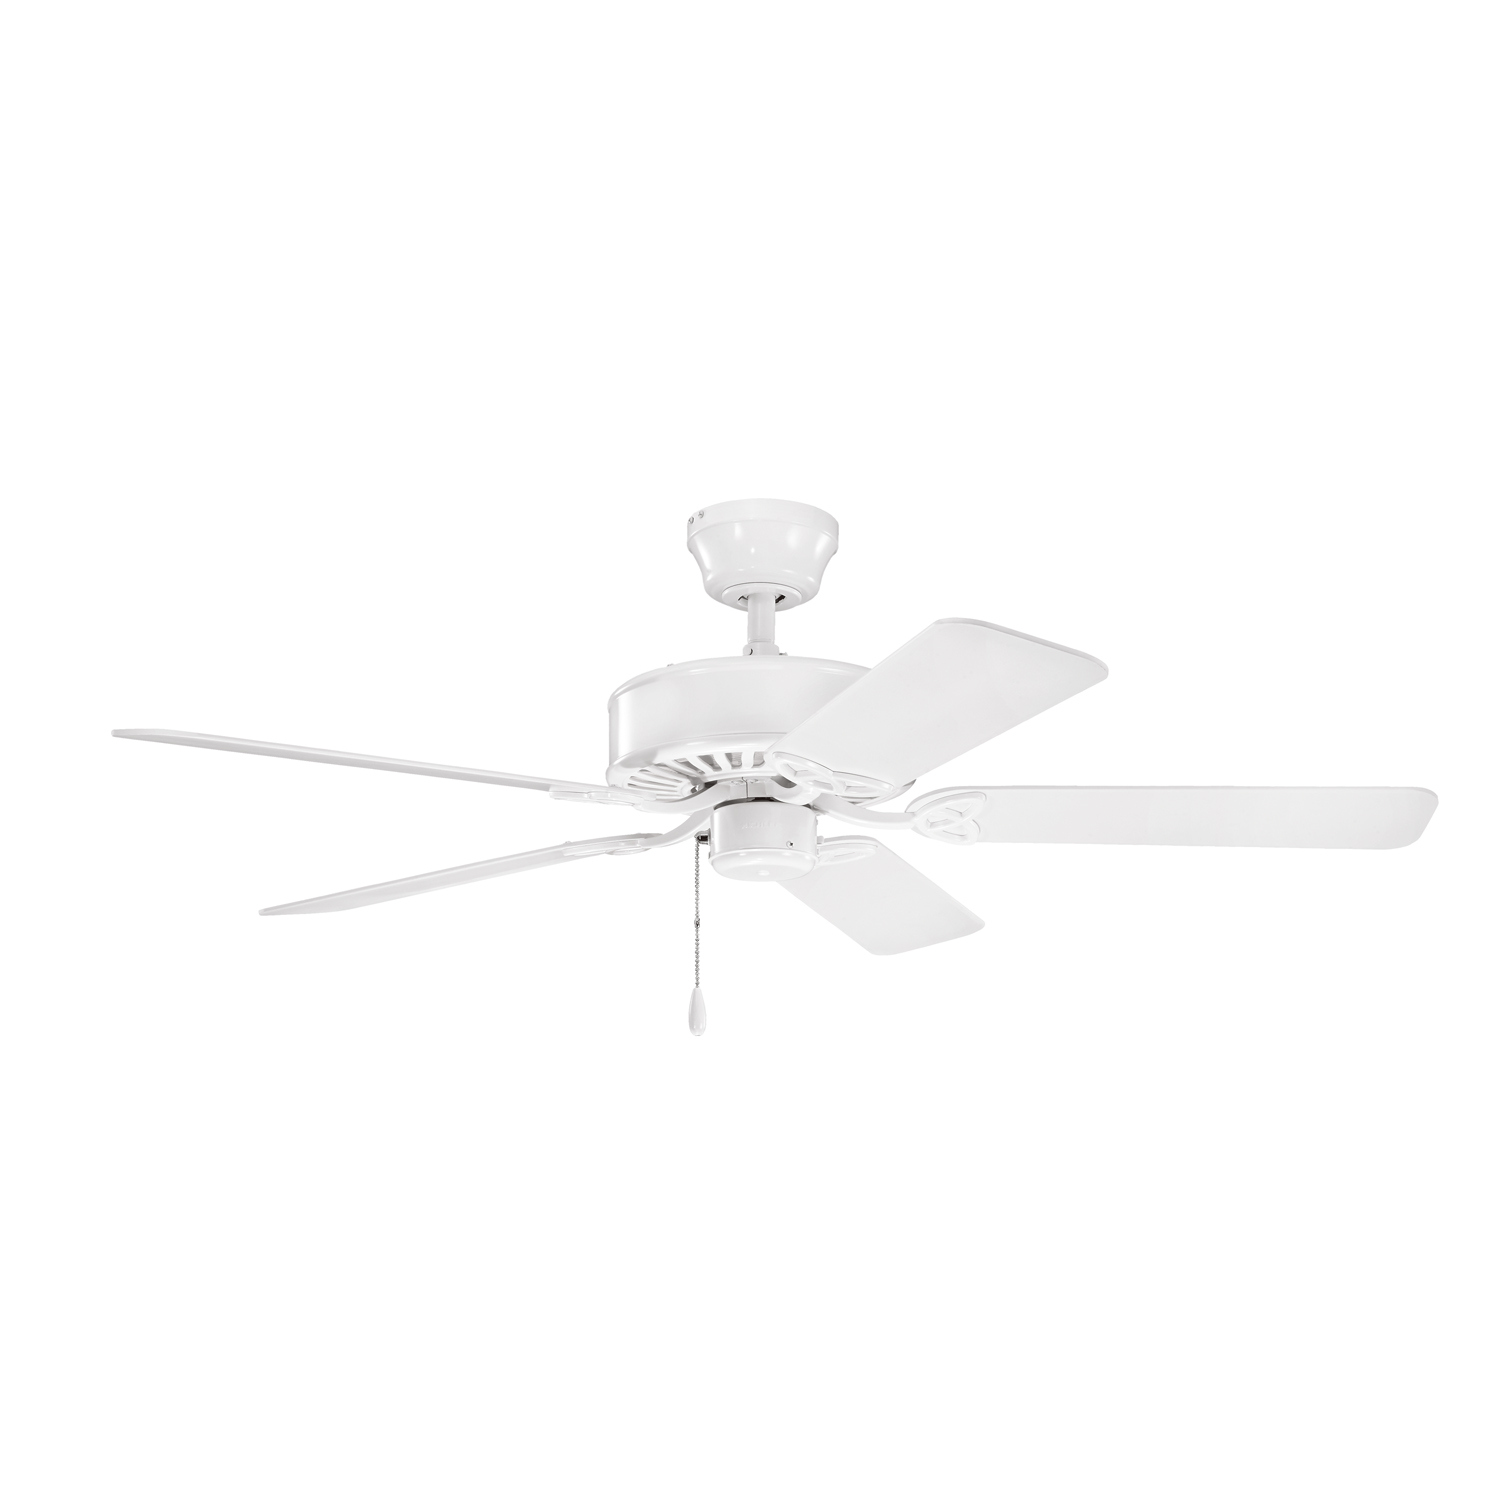 50 inchCeiling Fan from the Renew ES collection by Kichler 330100WH